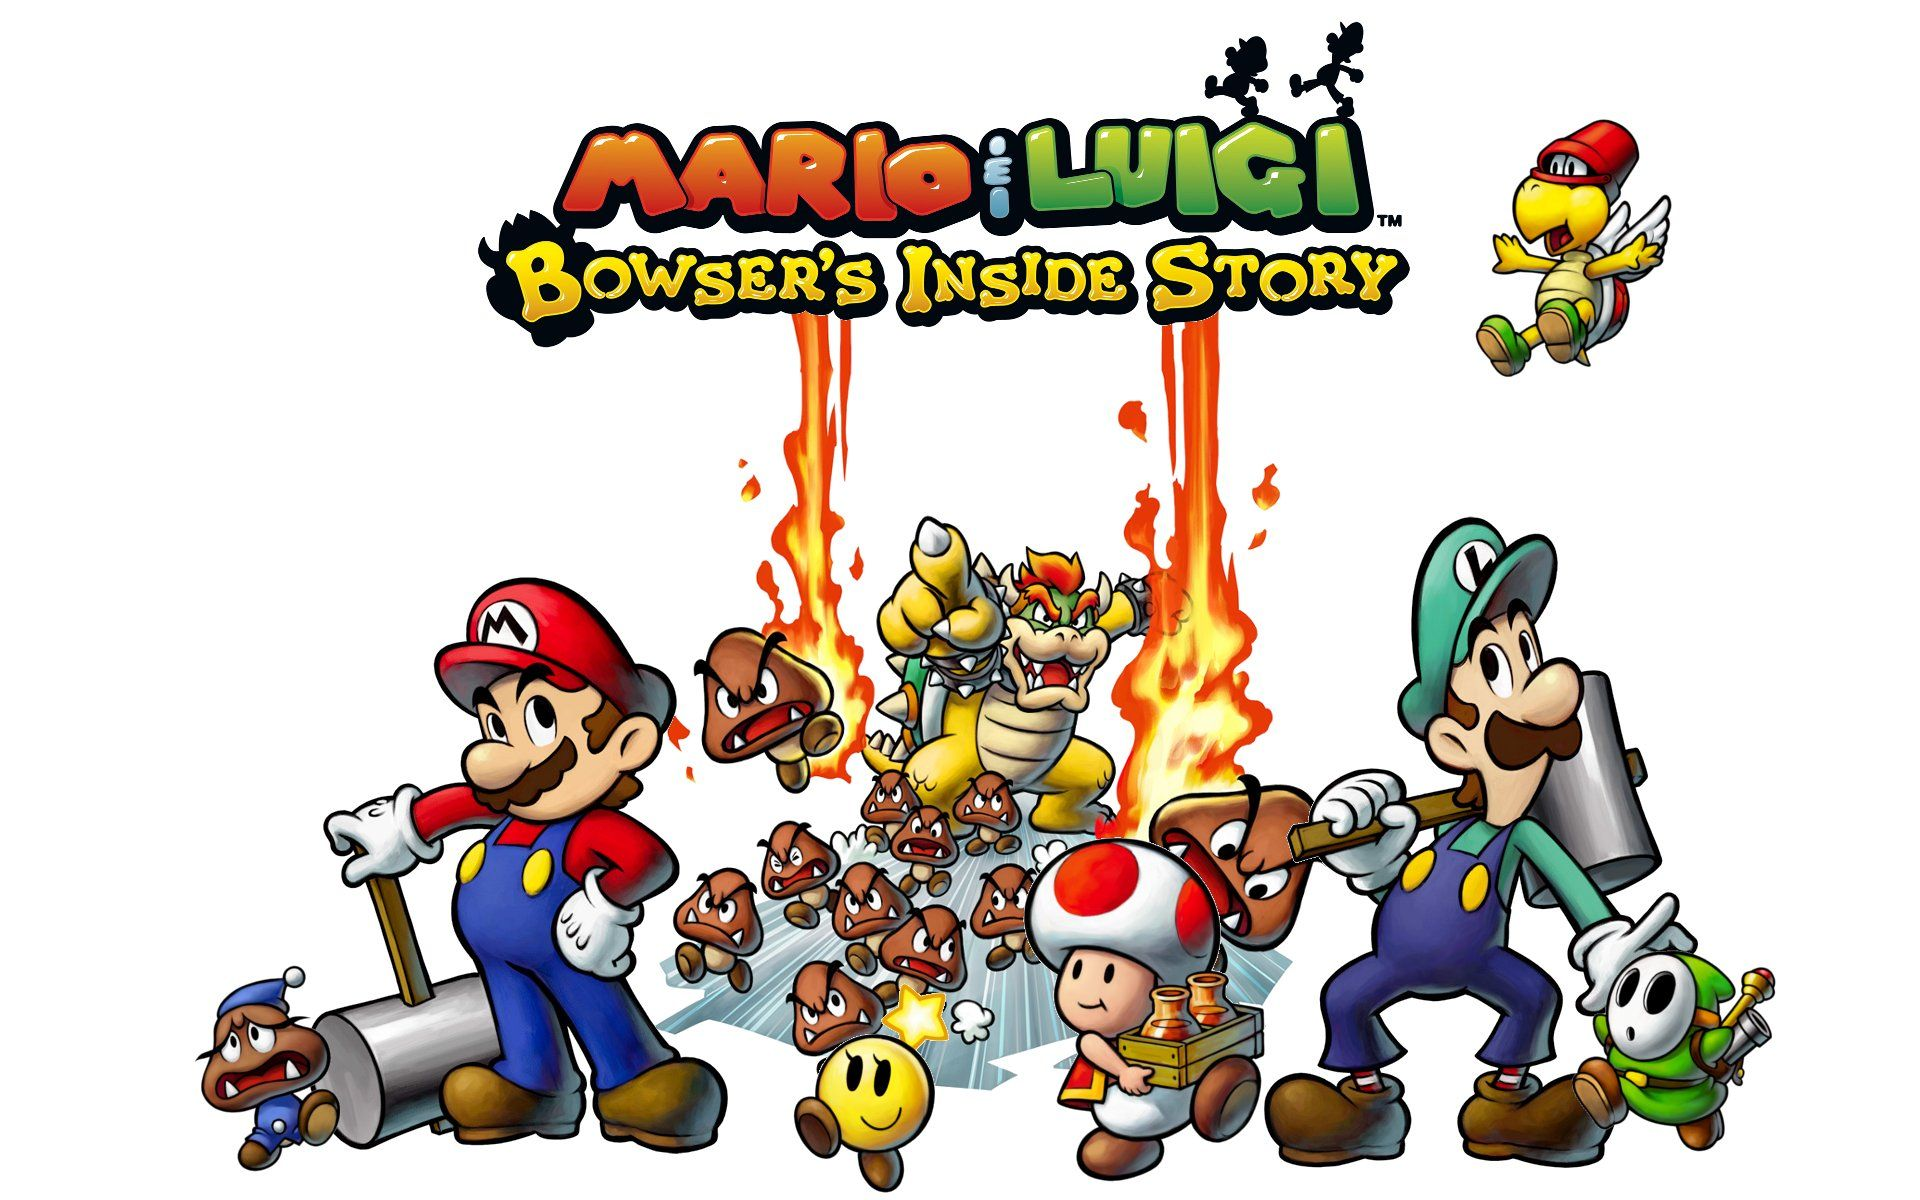 Nintendo Mario And Luigi Bowser S Inside Story In His Evil